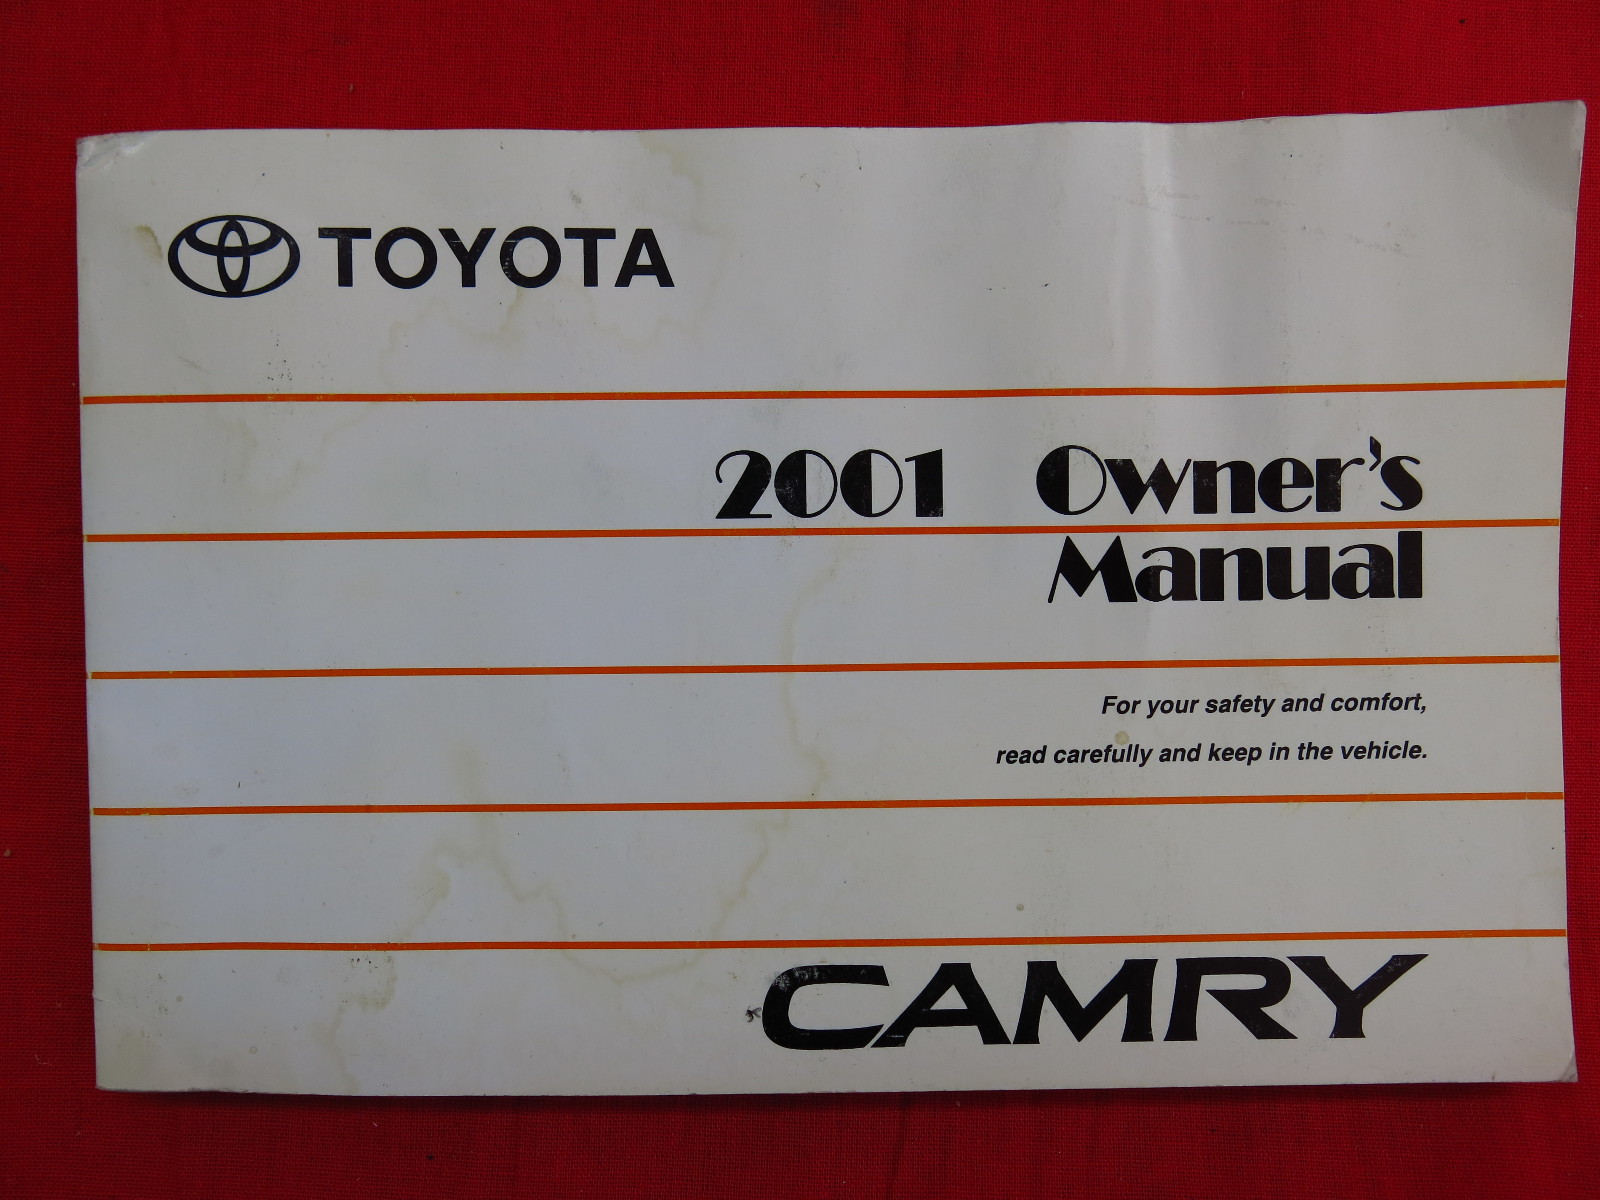 2001 toyota camry owners manual guide book